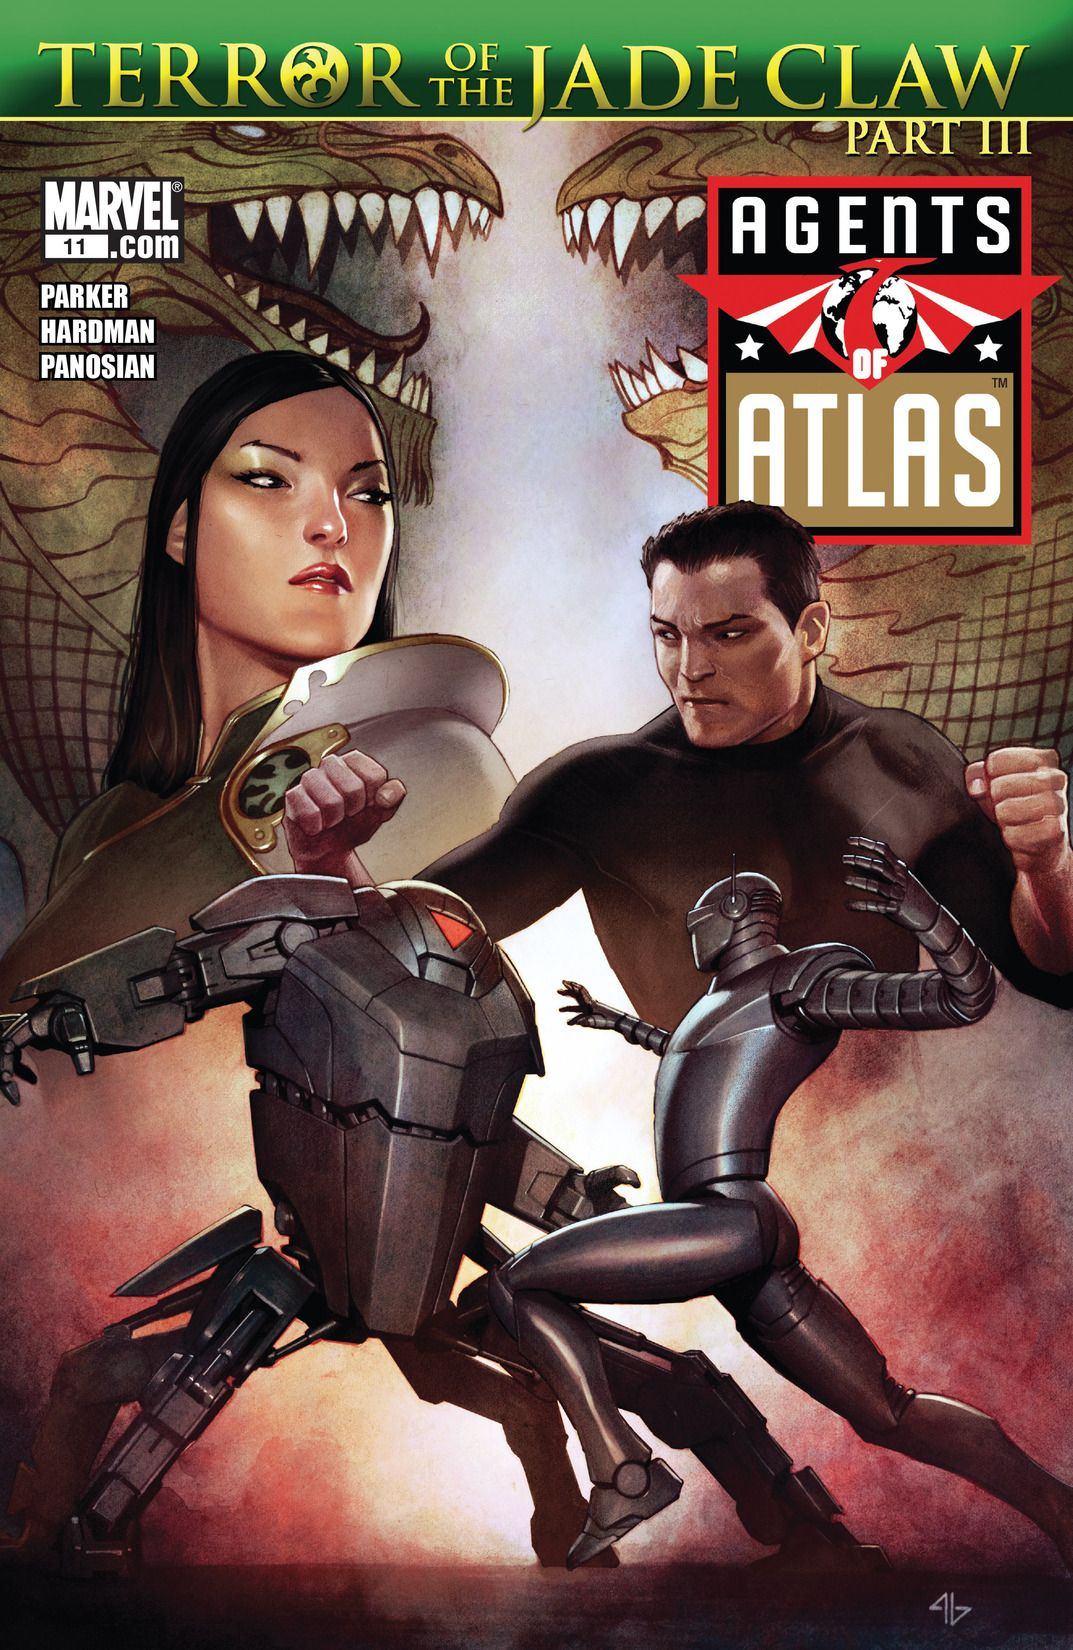 Agents of Atlas Vol 2 11